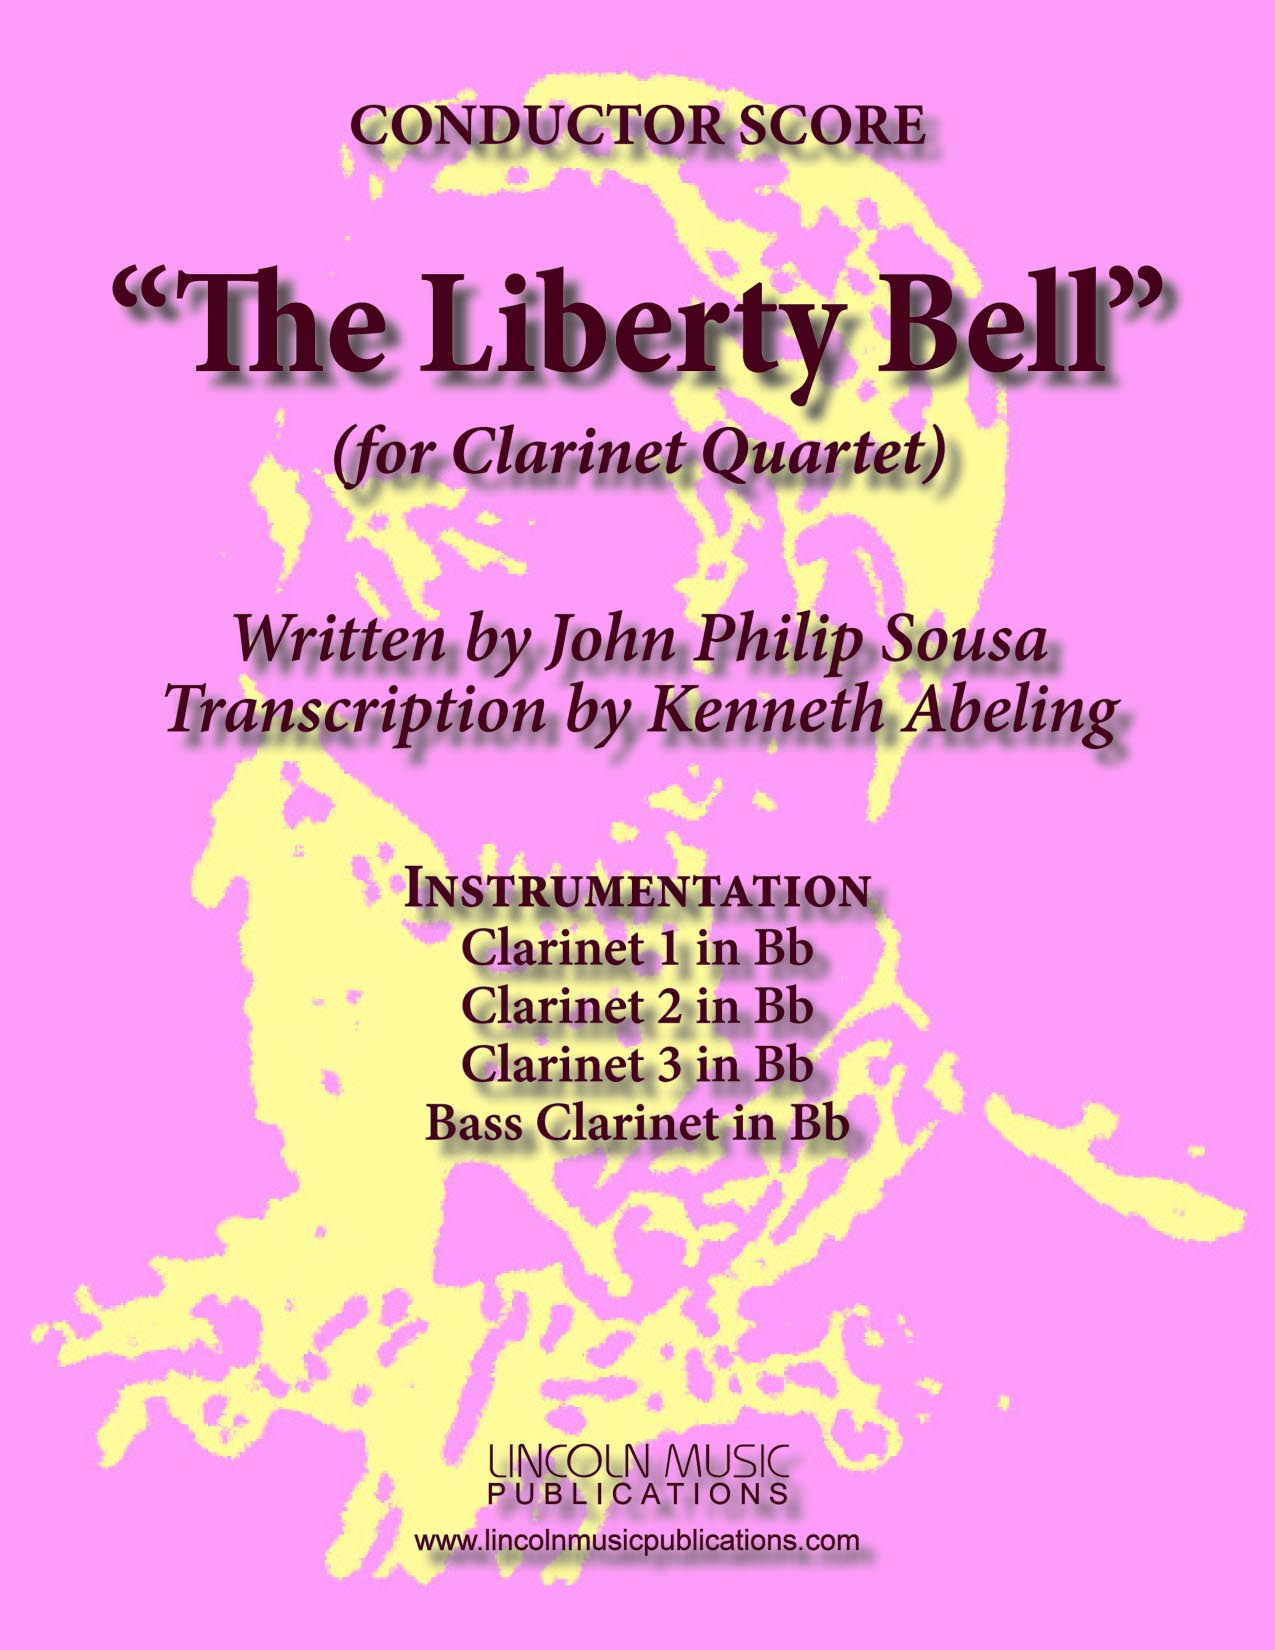 The Liberty Bell